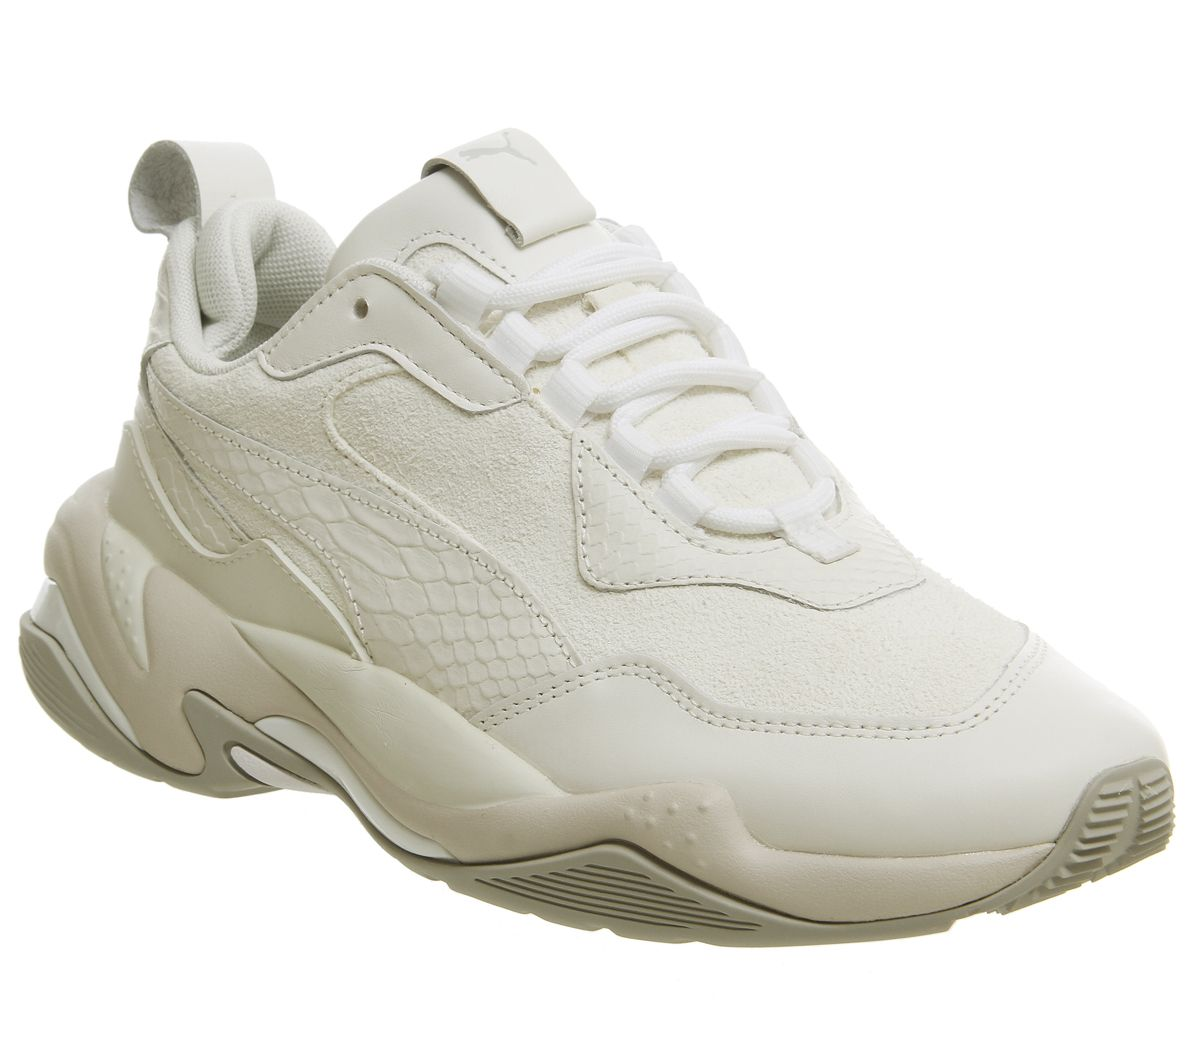 sale retailer bc381 c2245 Puma Thunder Desert Trainers Bright White Star Grey Violet - His ...